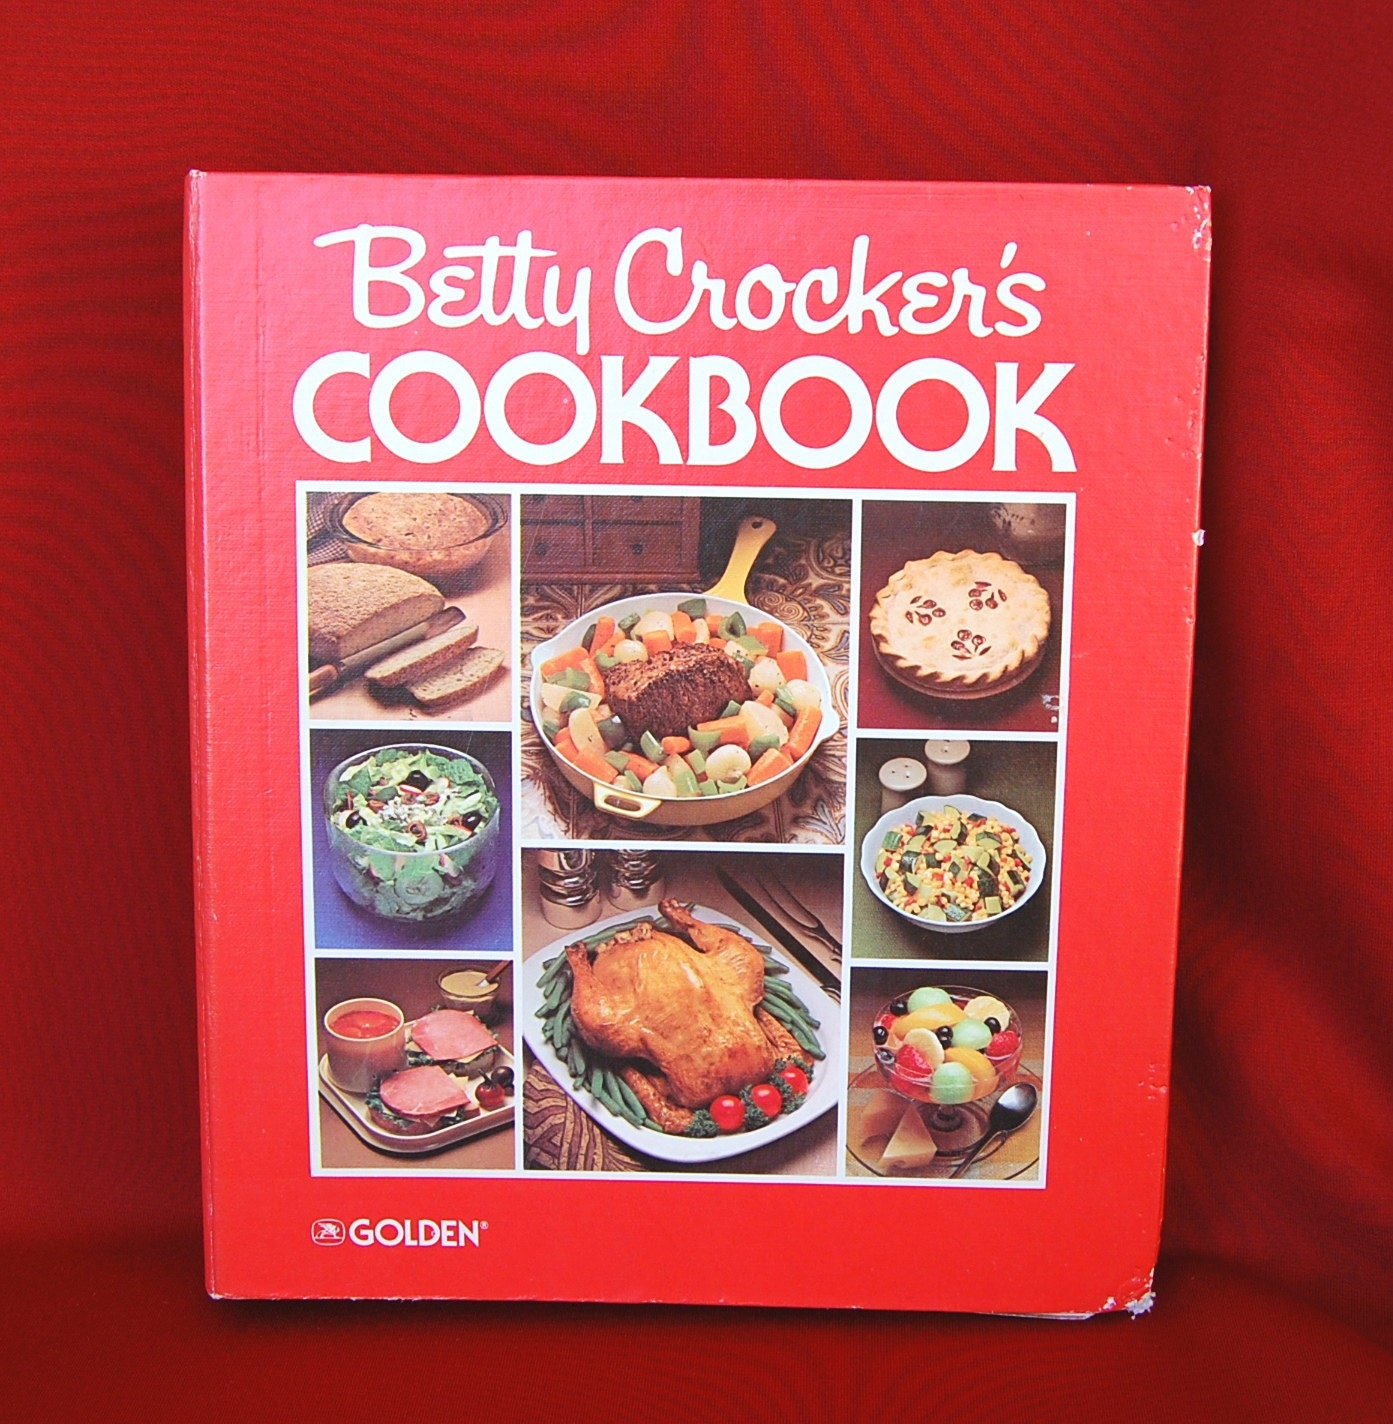 Cookbook Red Checkered Cover : Vintage betty crocker s cookbook ringbound red cover